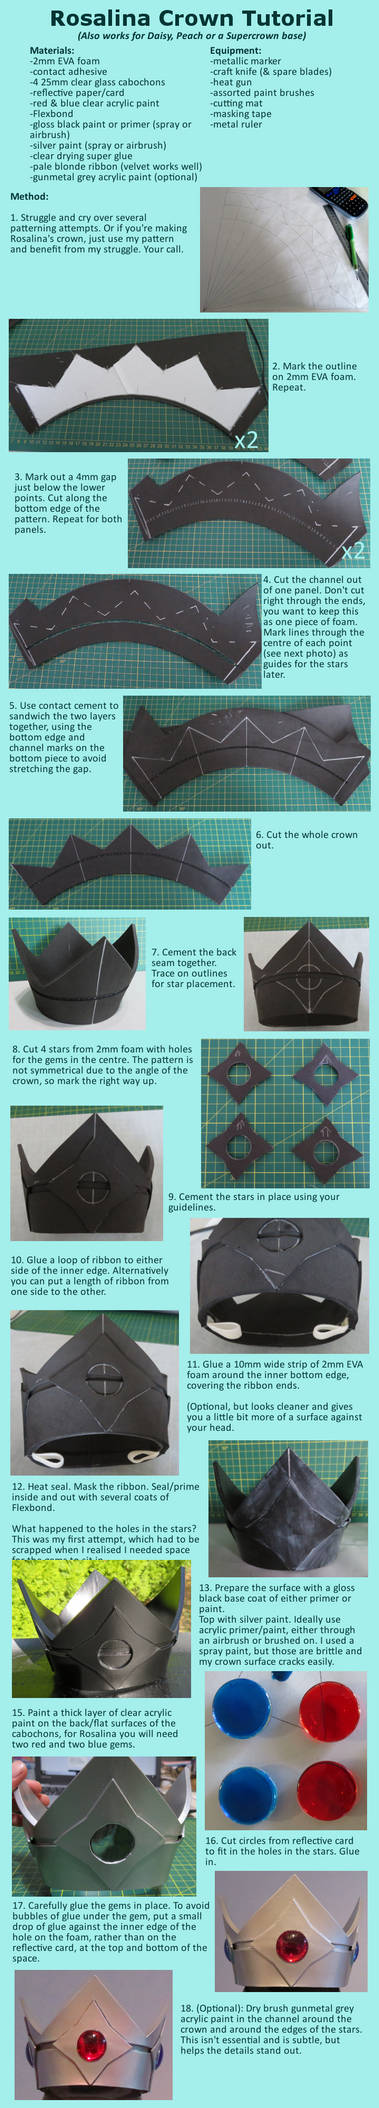 Rosalina Cosplay Crown Tutorial by HollowFlameCosplay on